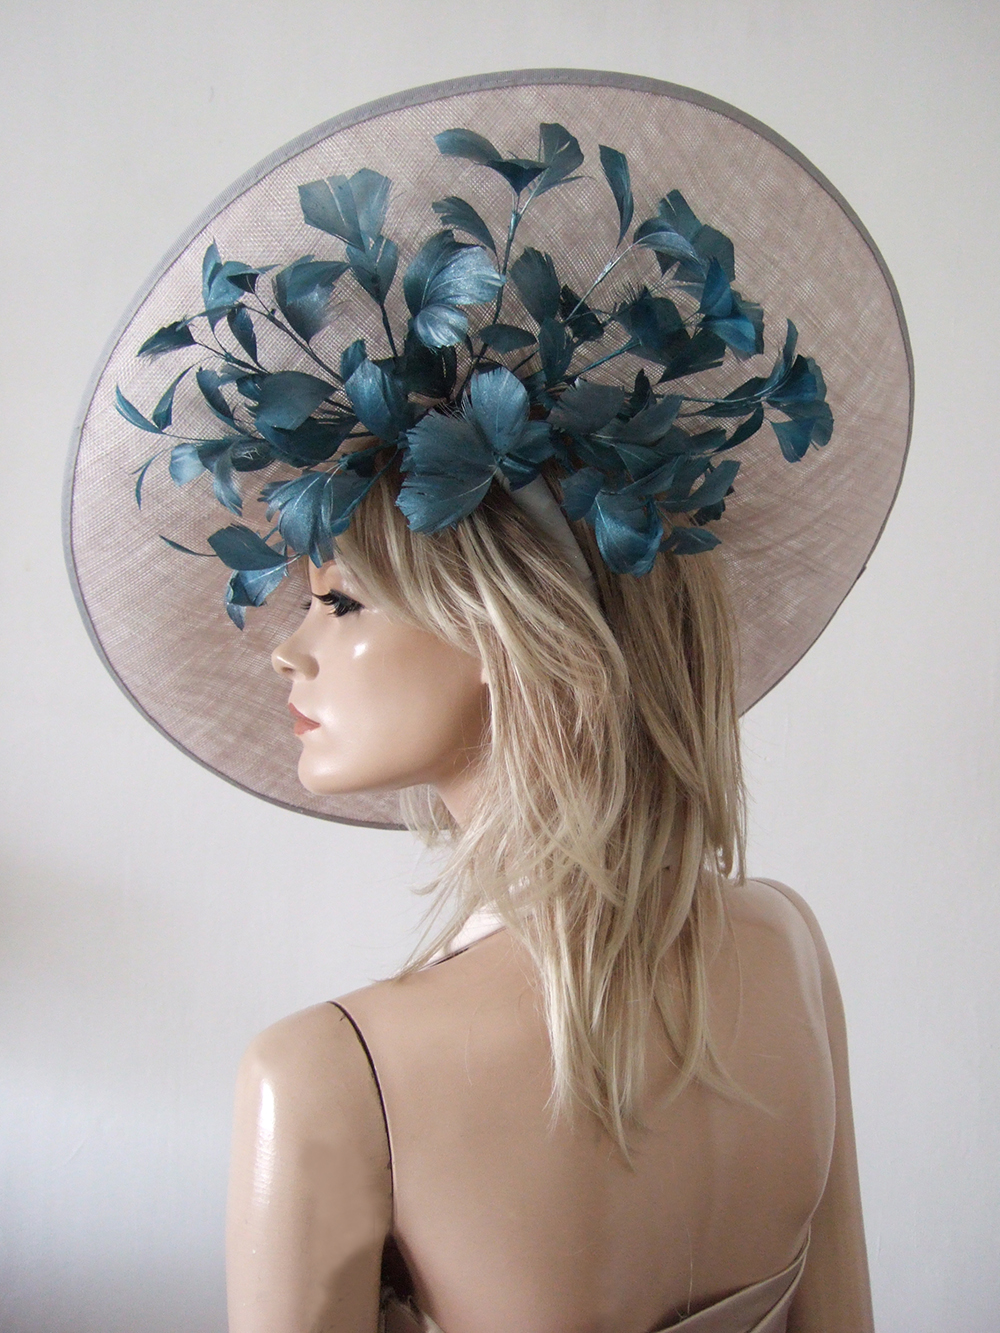 Big Hat for Royal Ascot 2020. Royal Ascot Hat Rental 2020. Hat Hire Berkshire. Amazing Royal Ascot Hats 2020. Ladies Wedding Hats for Hire 2020. Silver Mother of the Bride Hats 2020. Royal Ascot Hat Rental 2020. Formal Wedding Hats for Hire UK 2020. Hats for the Races 2020.